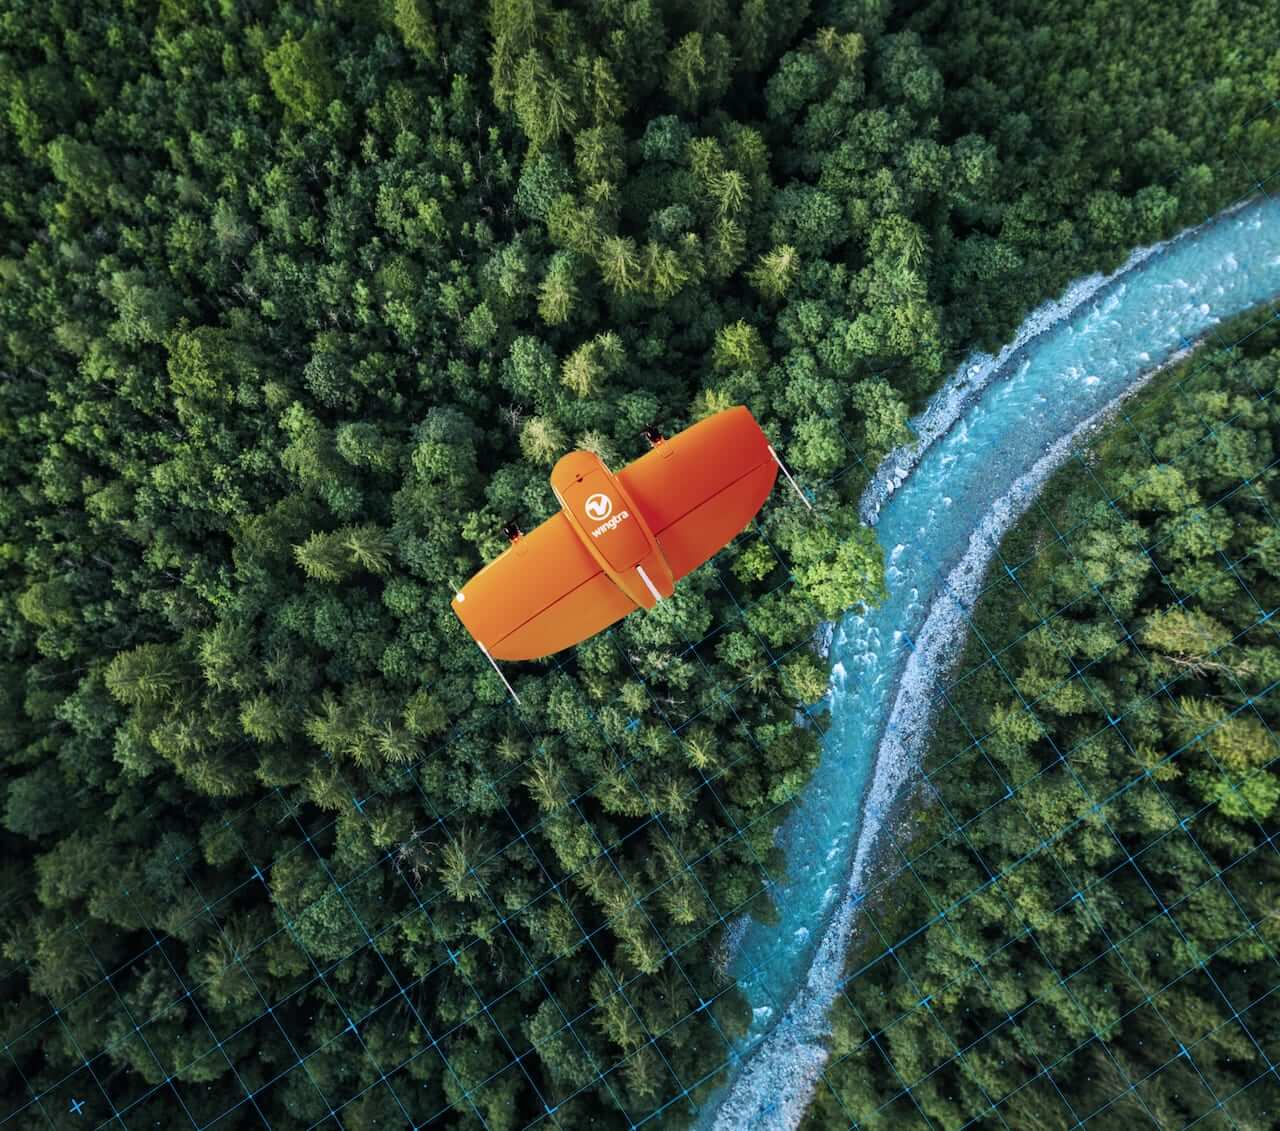 Professional VTOL fixed-wing drone mapping a forest